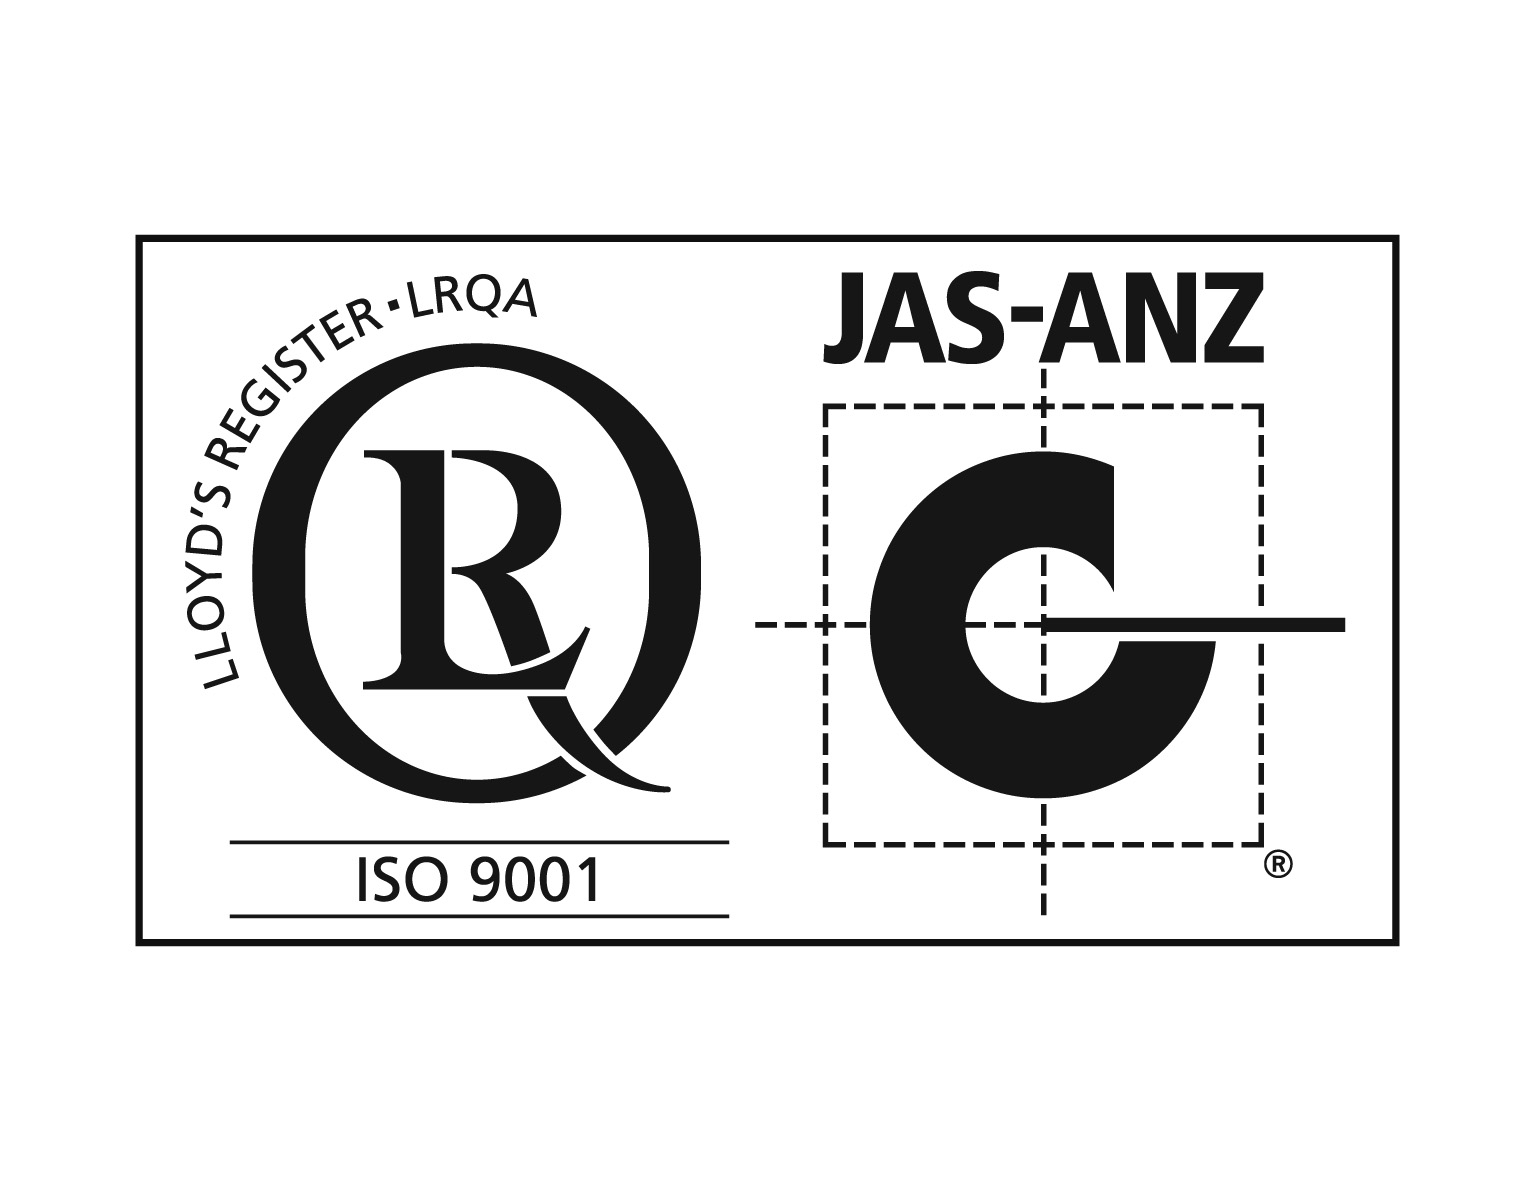 ISO9001 with JAS-ANZ